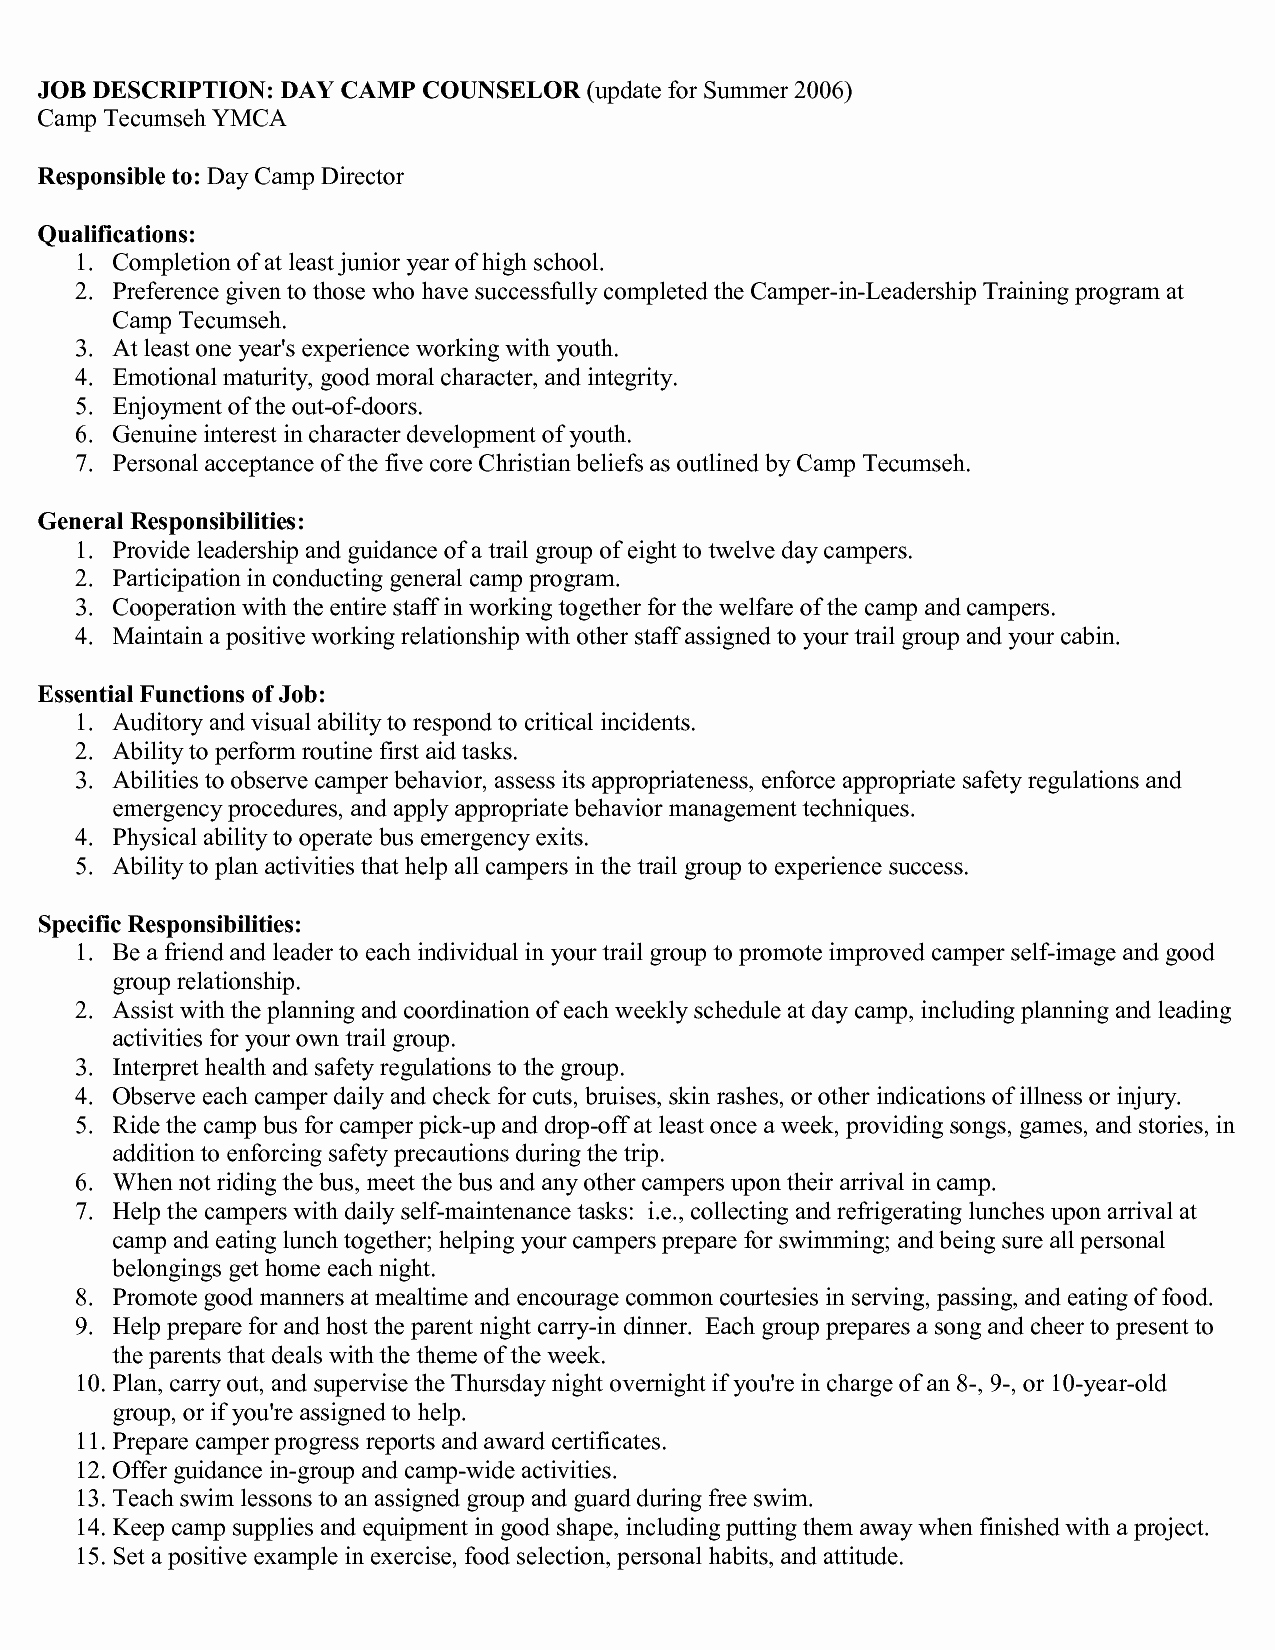 Mental Health Counseling Resume Samples Cover Letter – Latter ...